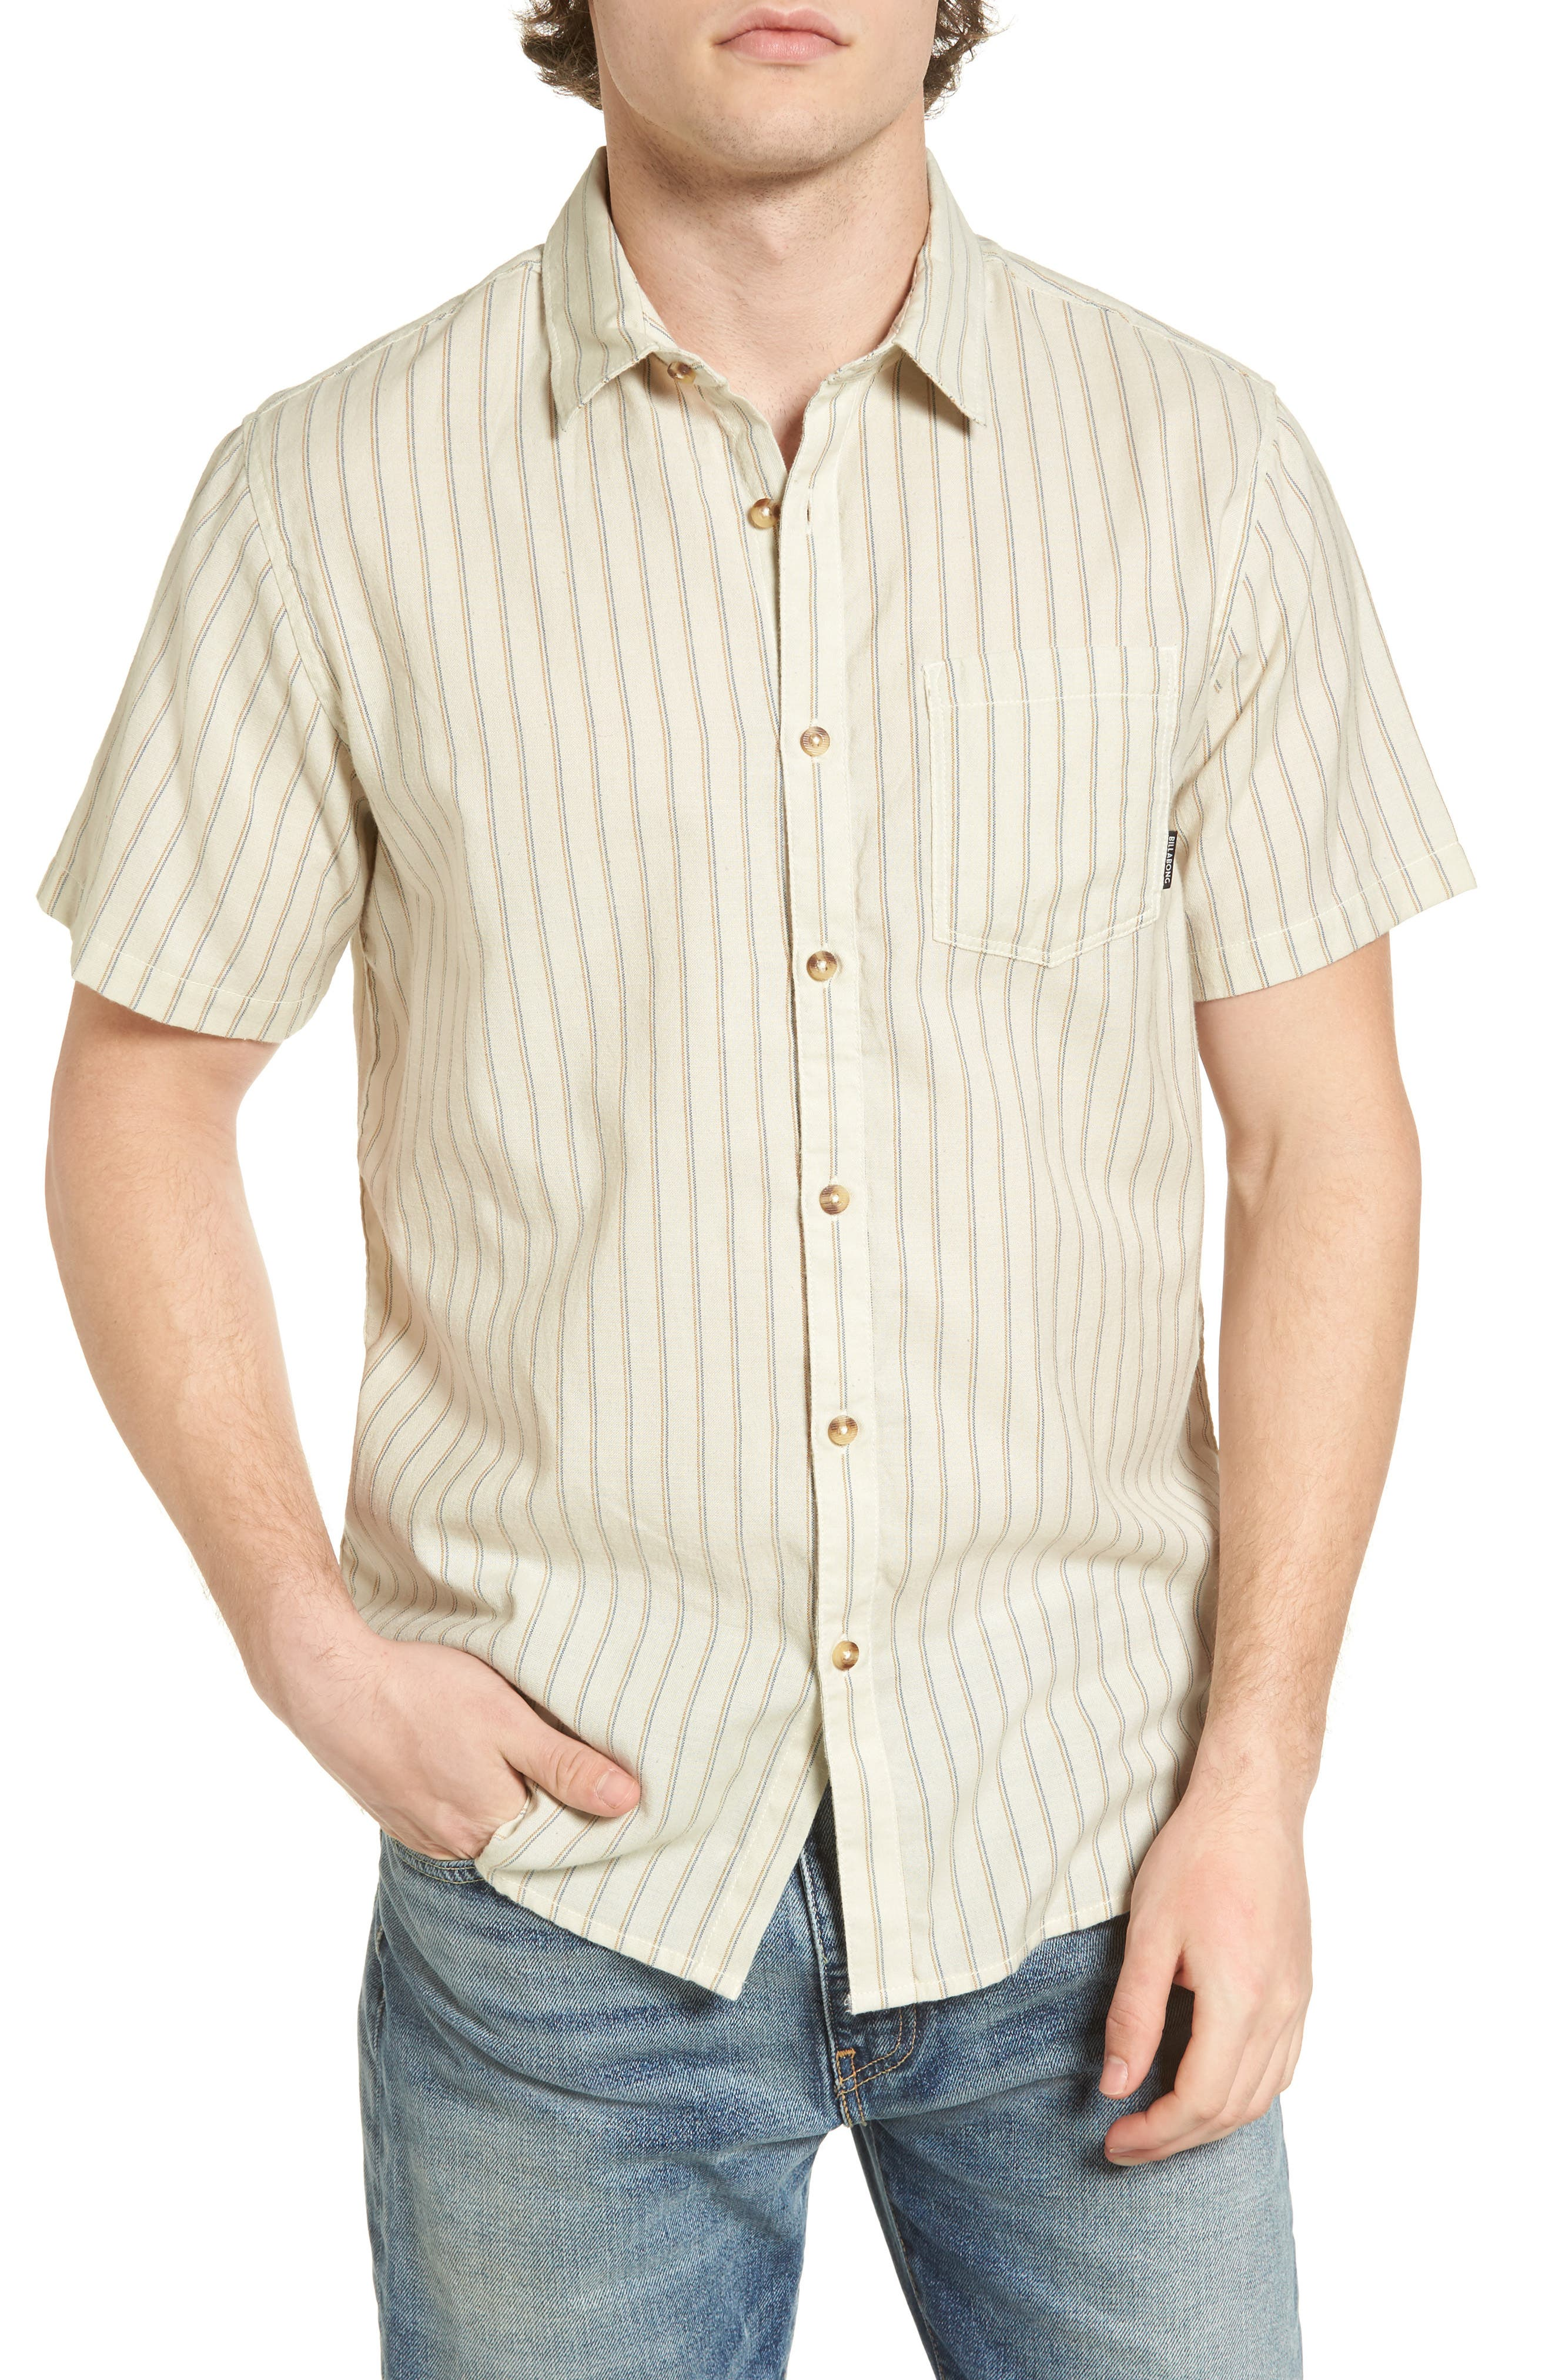 Kelso Tailored Fit Stripe Shirt,                         Main,                         color, Stone